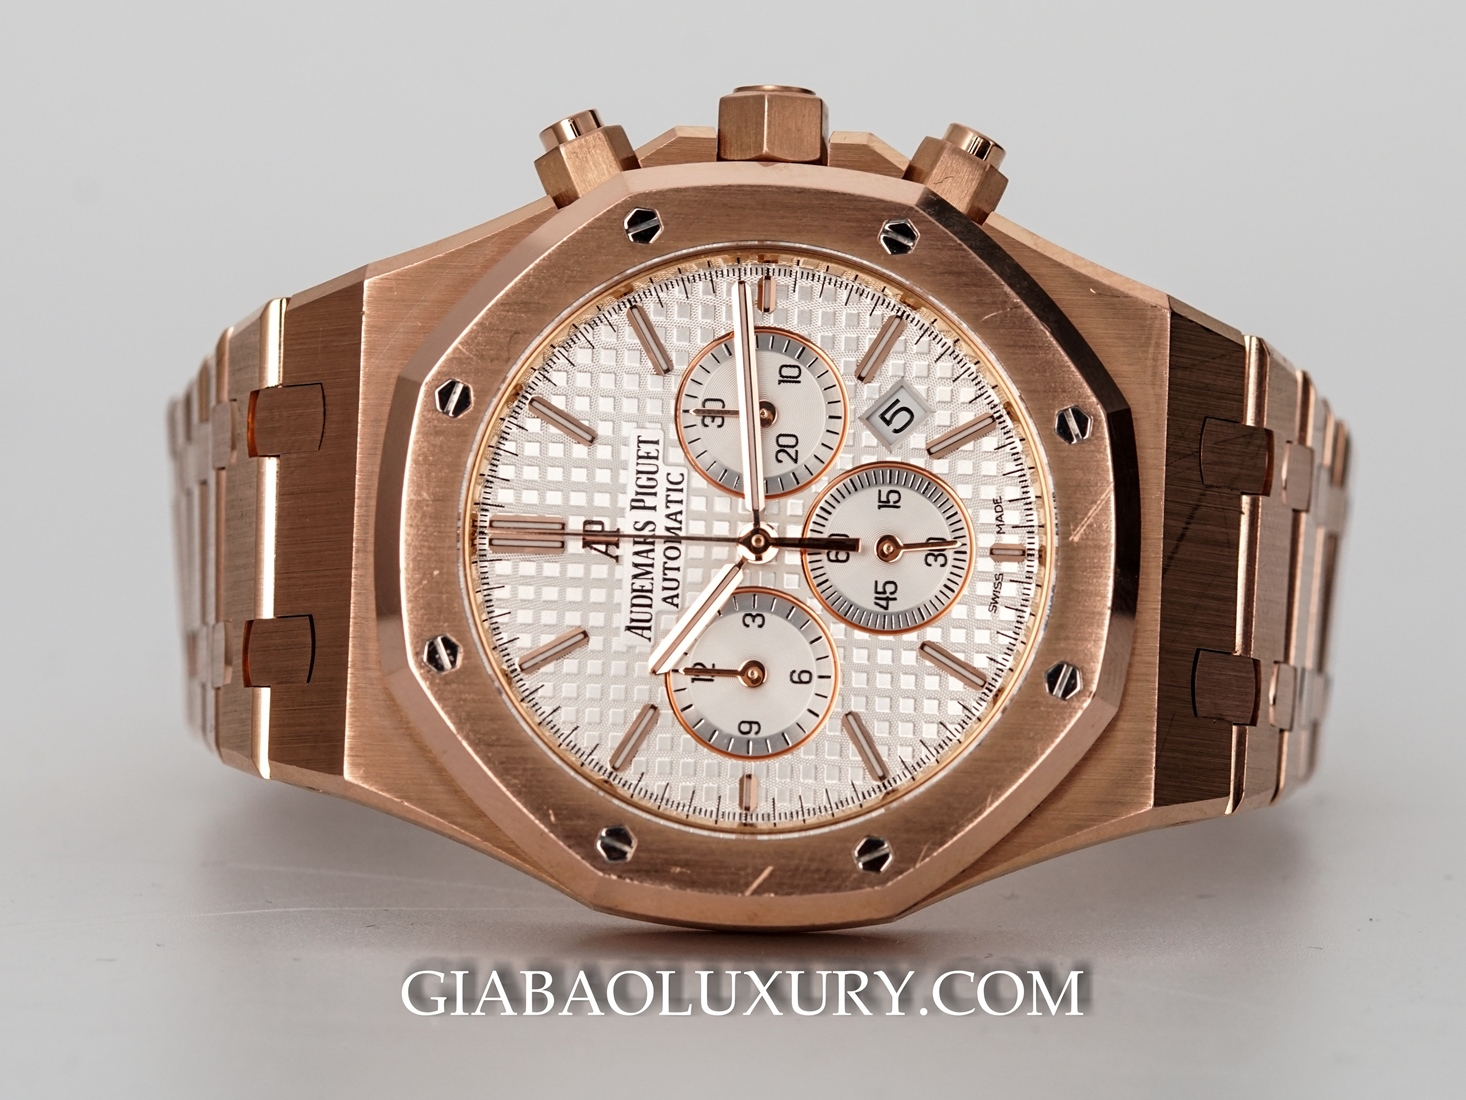 Đồng Hồ Audemars Piguet Royal Oak Chronograph 26320OR.OO.1220OR.02